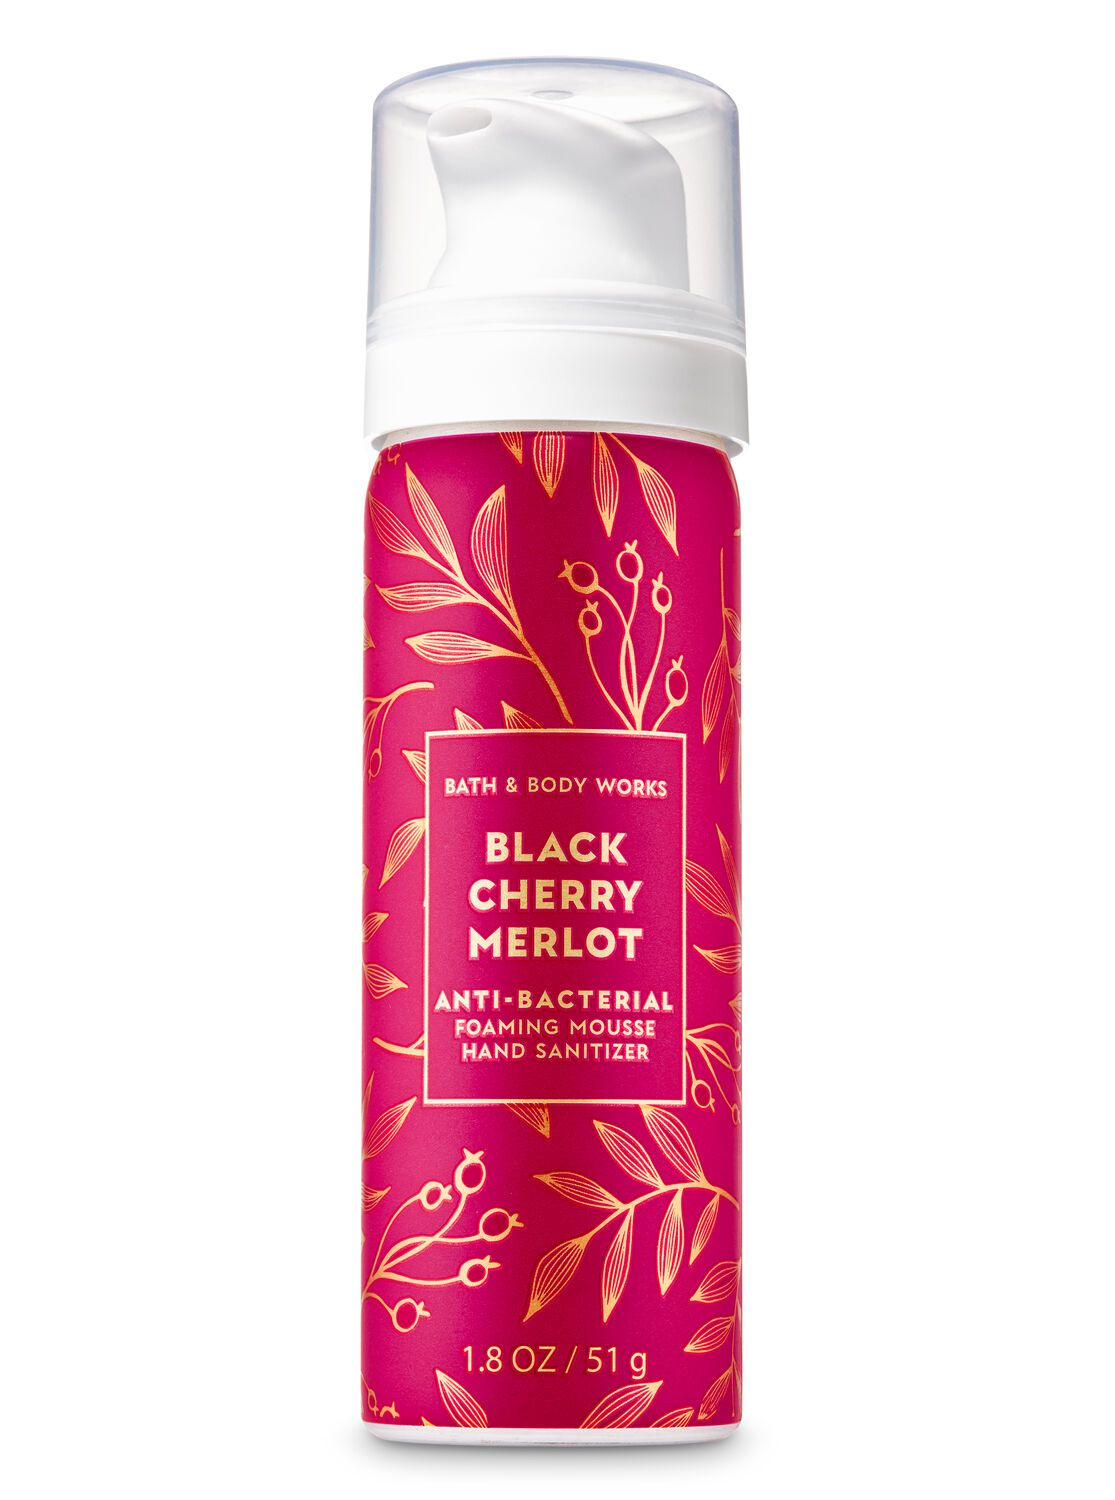 Black Cherry Merlot Foaming Hand Sanitizer Bath Body Works